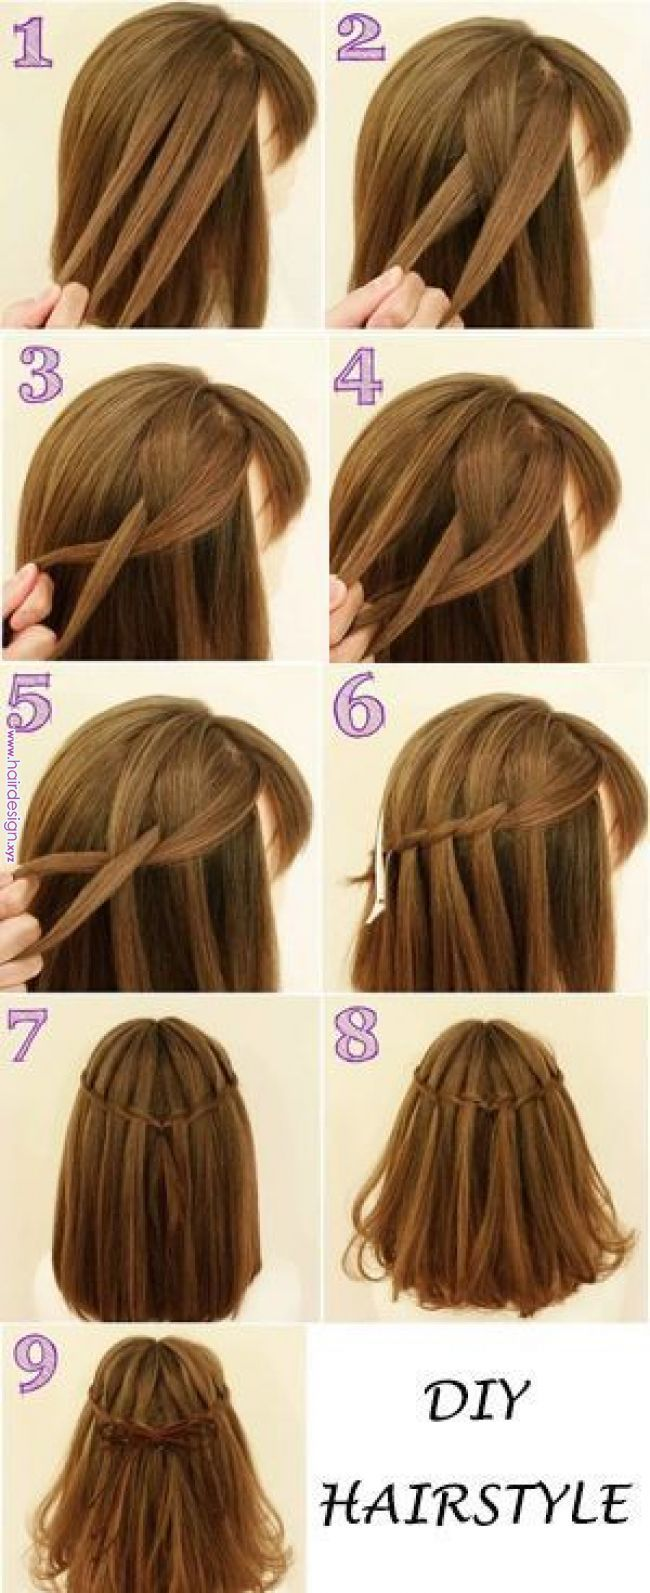 Diy Haristyle You Can Try Easy Daily Hairstyle In 2018 Pinterest Hair Styles Hair And Braids Diy Har Long Hair Models Diy Hairstyles Long Hair Styles